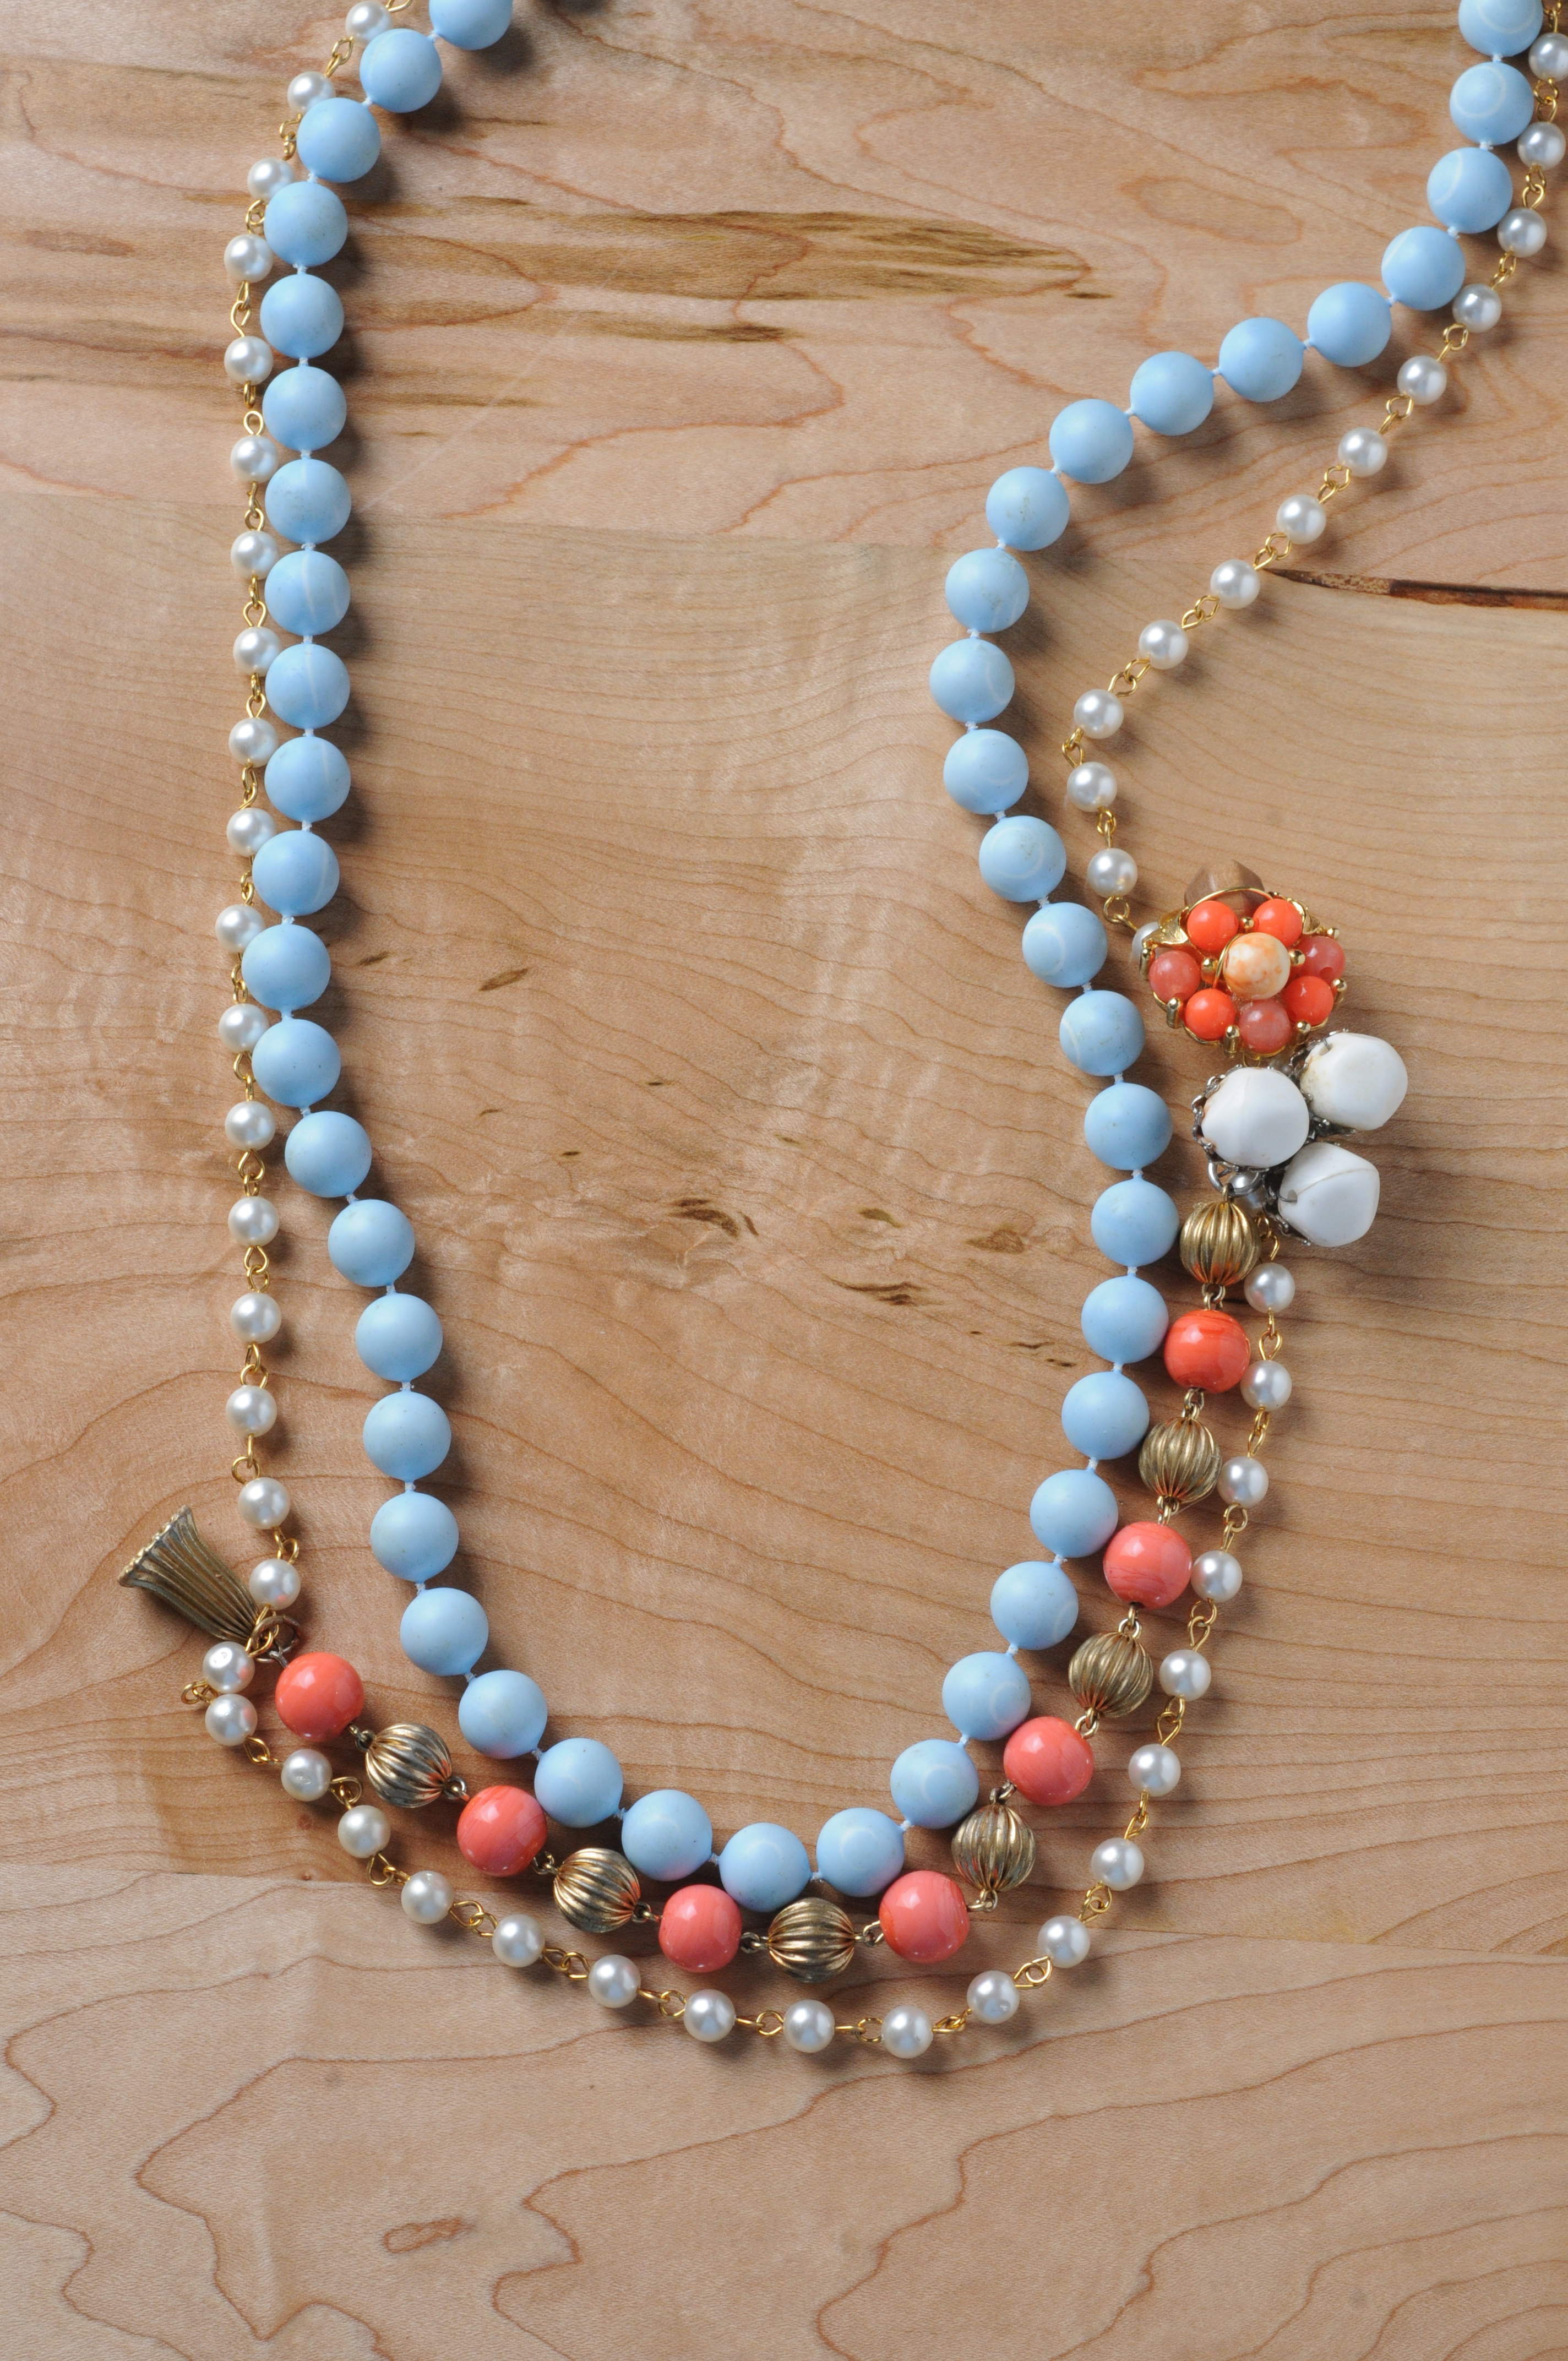 Jewelry, white, orange, blue, Necklaces, Vintage, Bride, Bridesmaid, Necklace, Earring, Beads